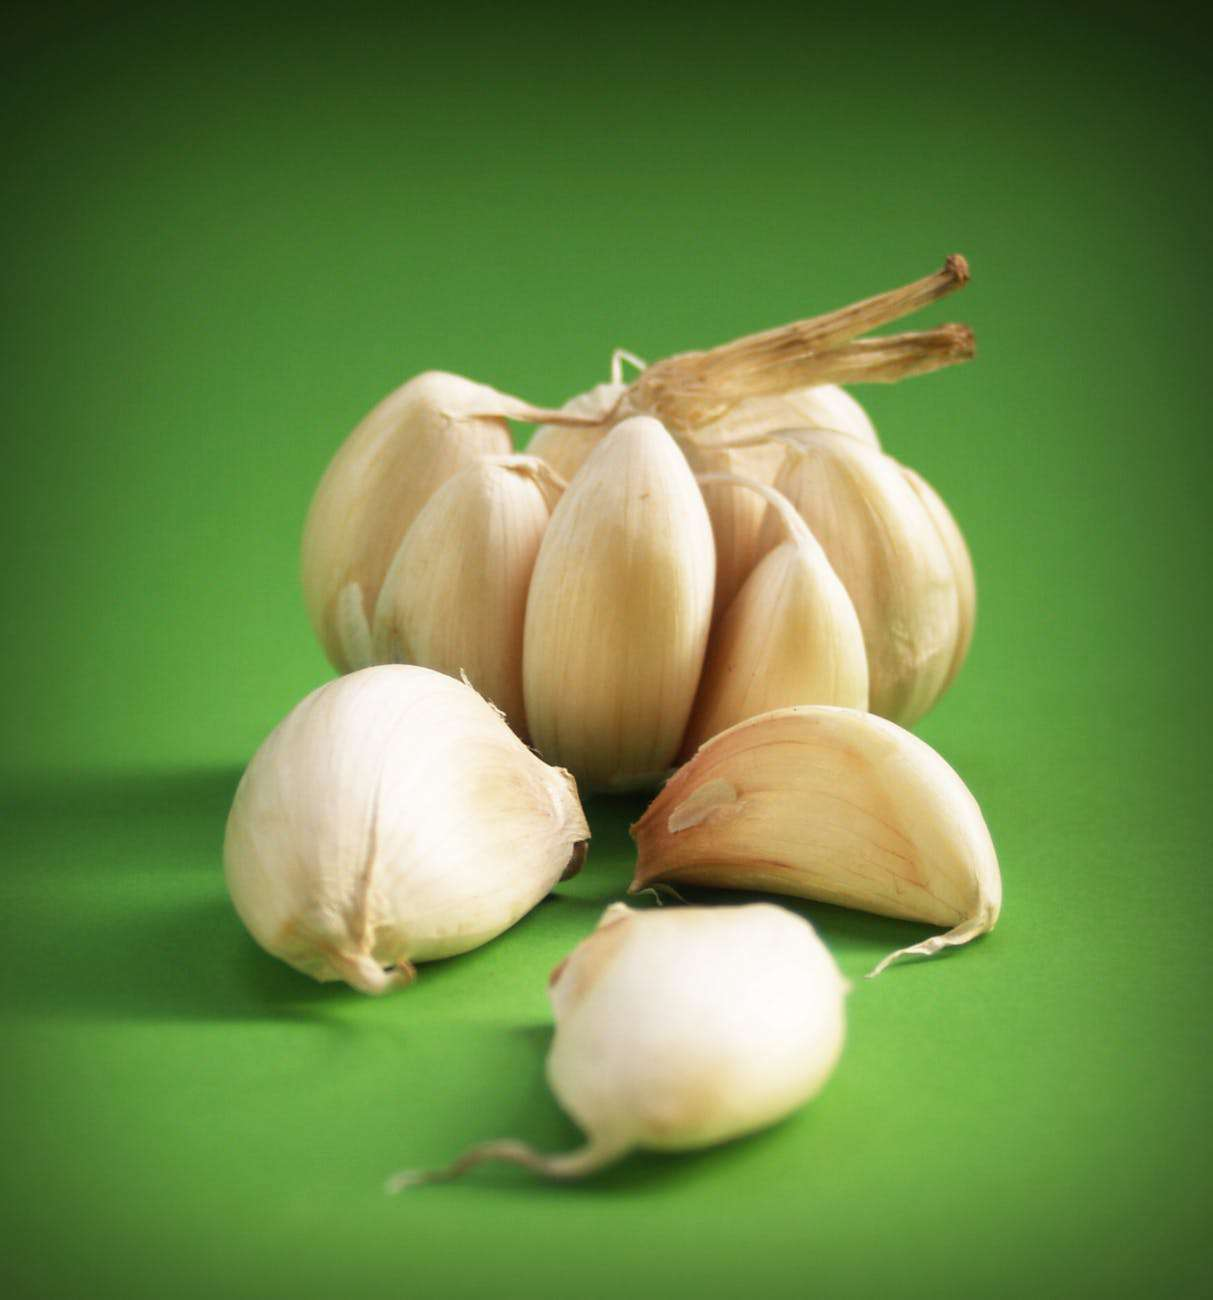 Garlic Tip For Pimples